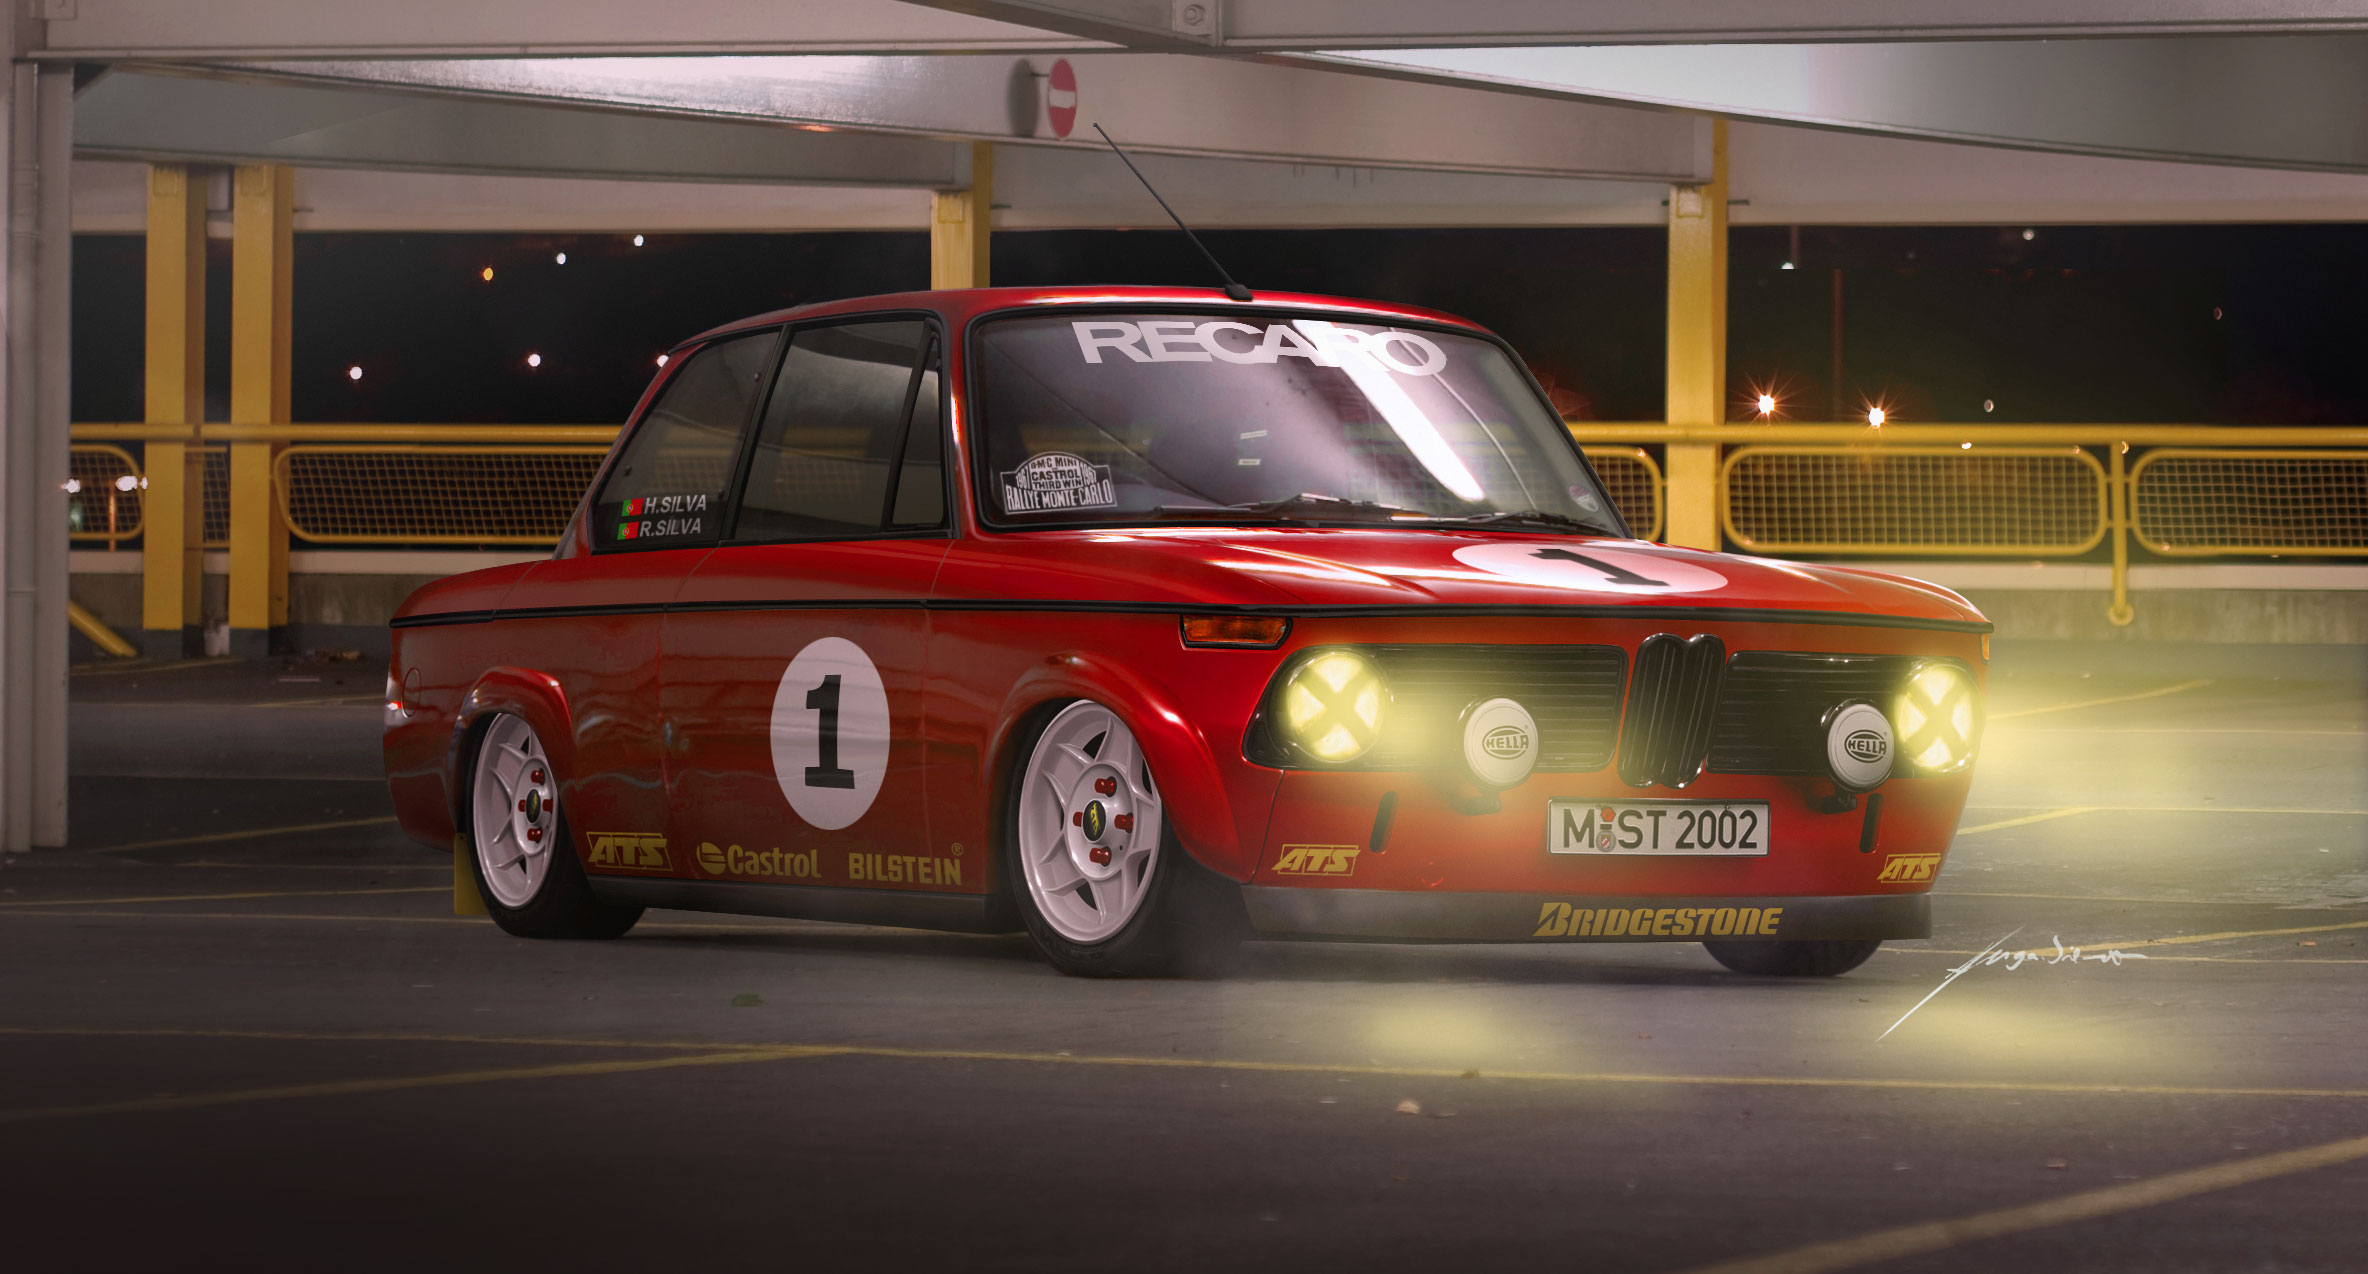 bmw 2002 rally car red by hugosilva on DeviantArt